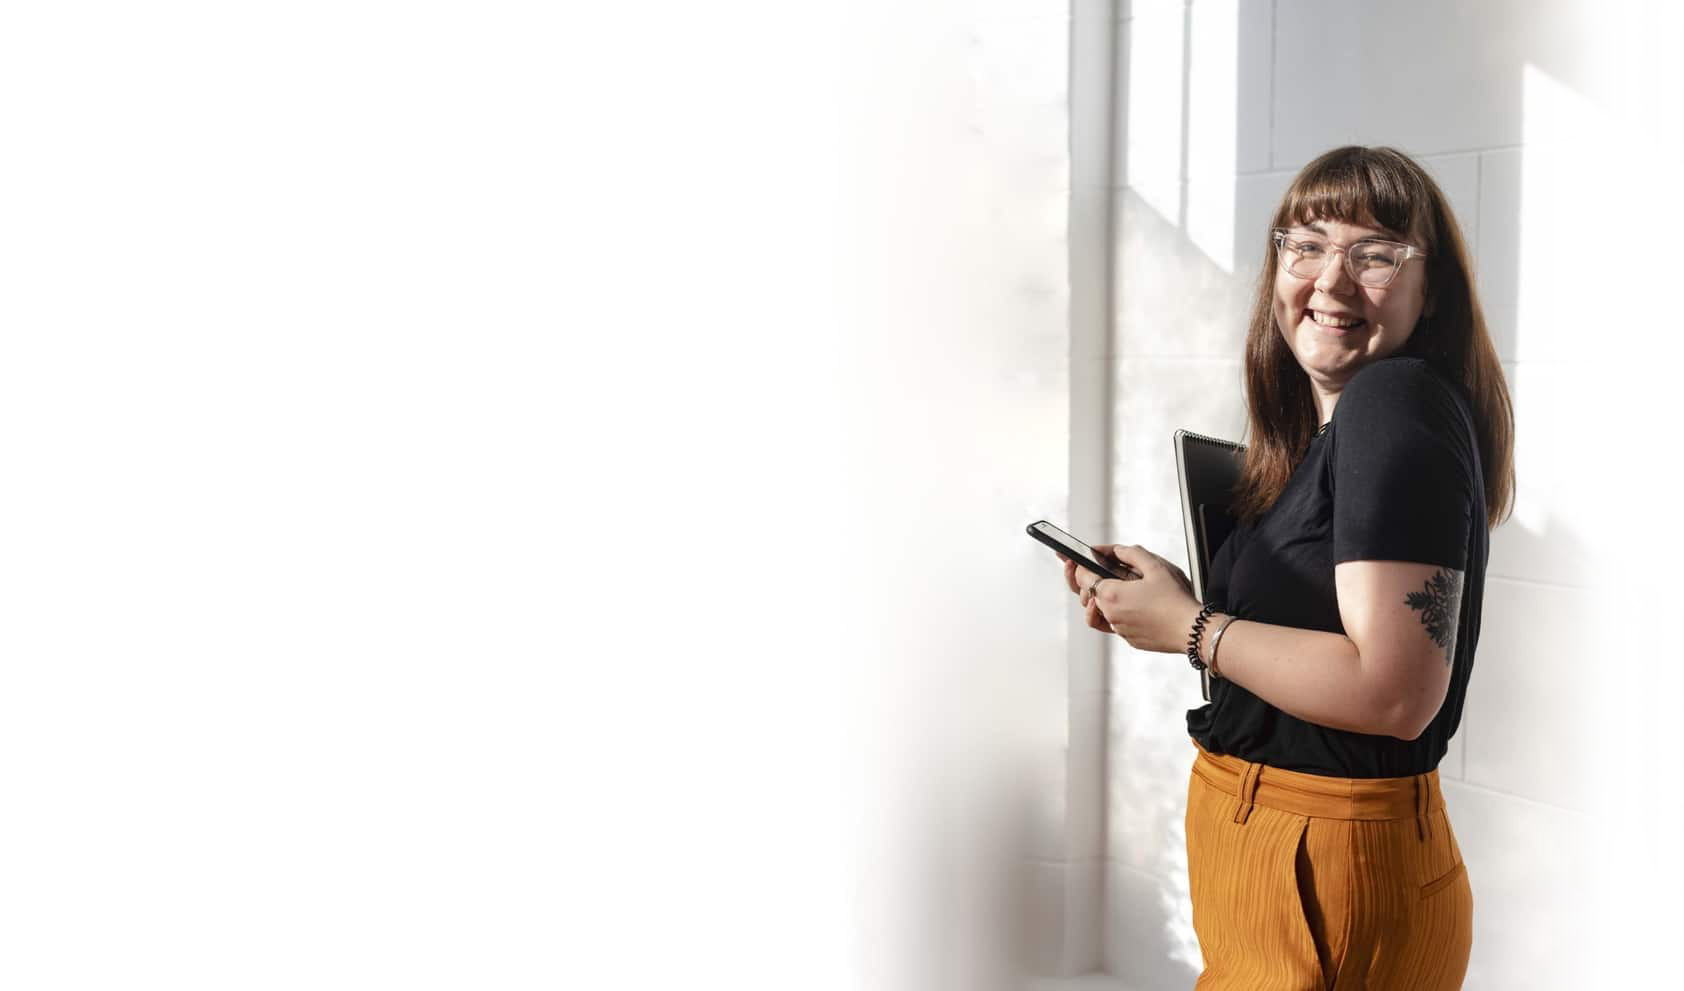 Hollie, a brand coach wearing orange pants and a black t-shirt, holding a phone and notebook, standing sideways facing left and smiling into the camera.